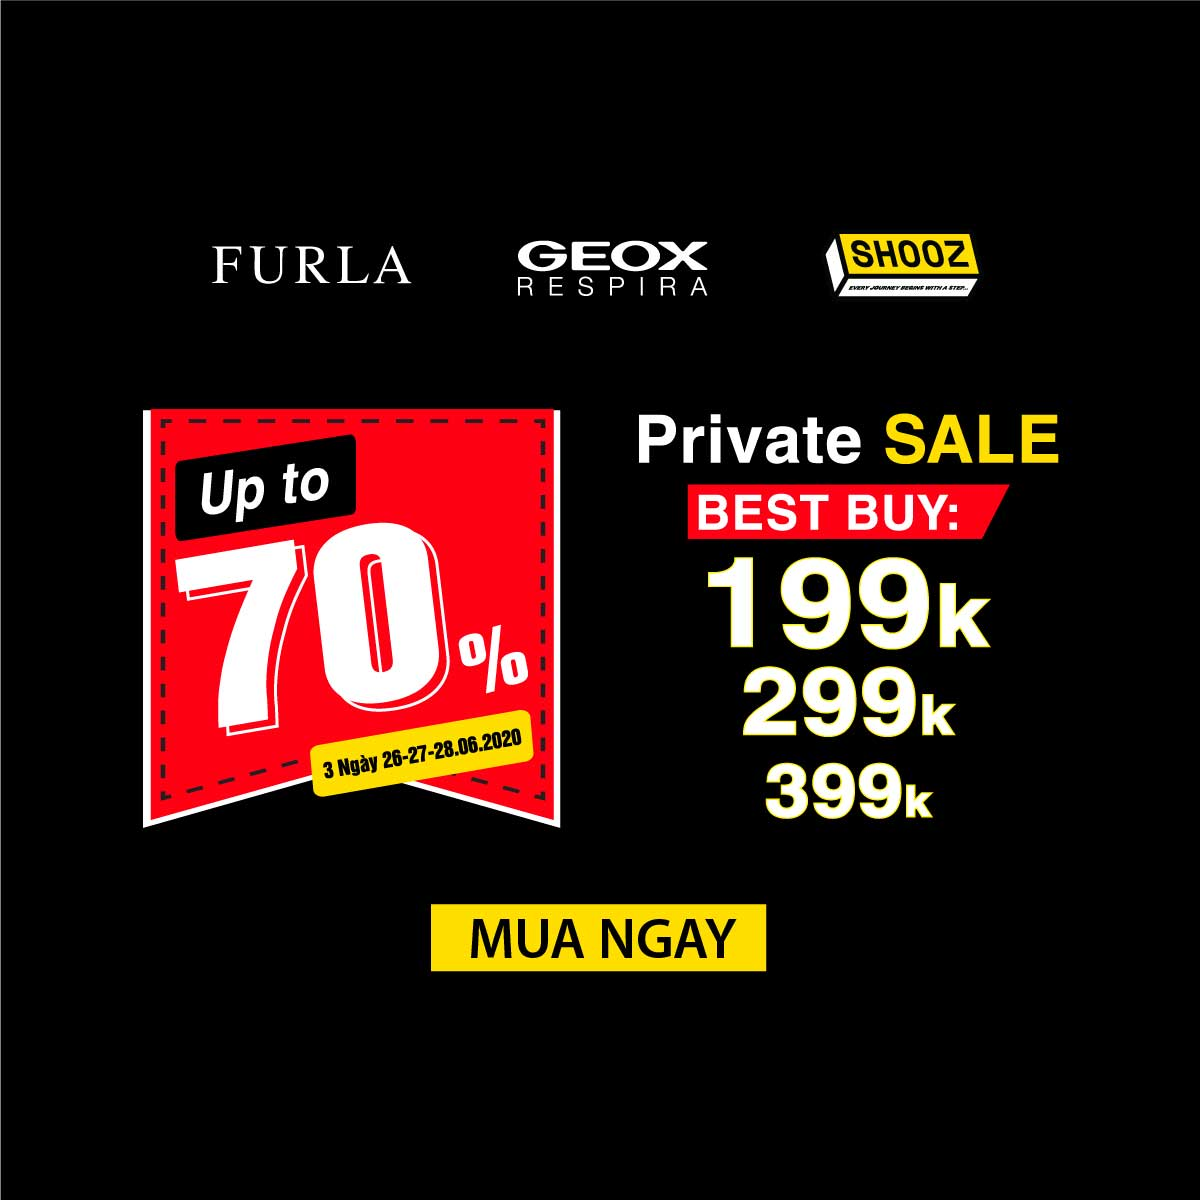 HAVANG PRIVATE SALE UP TO 70%